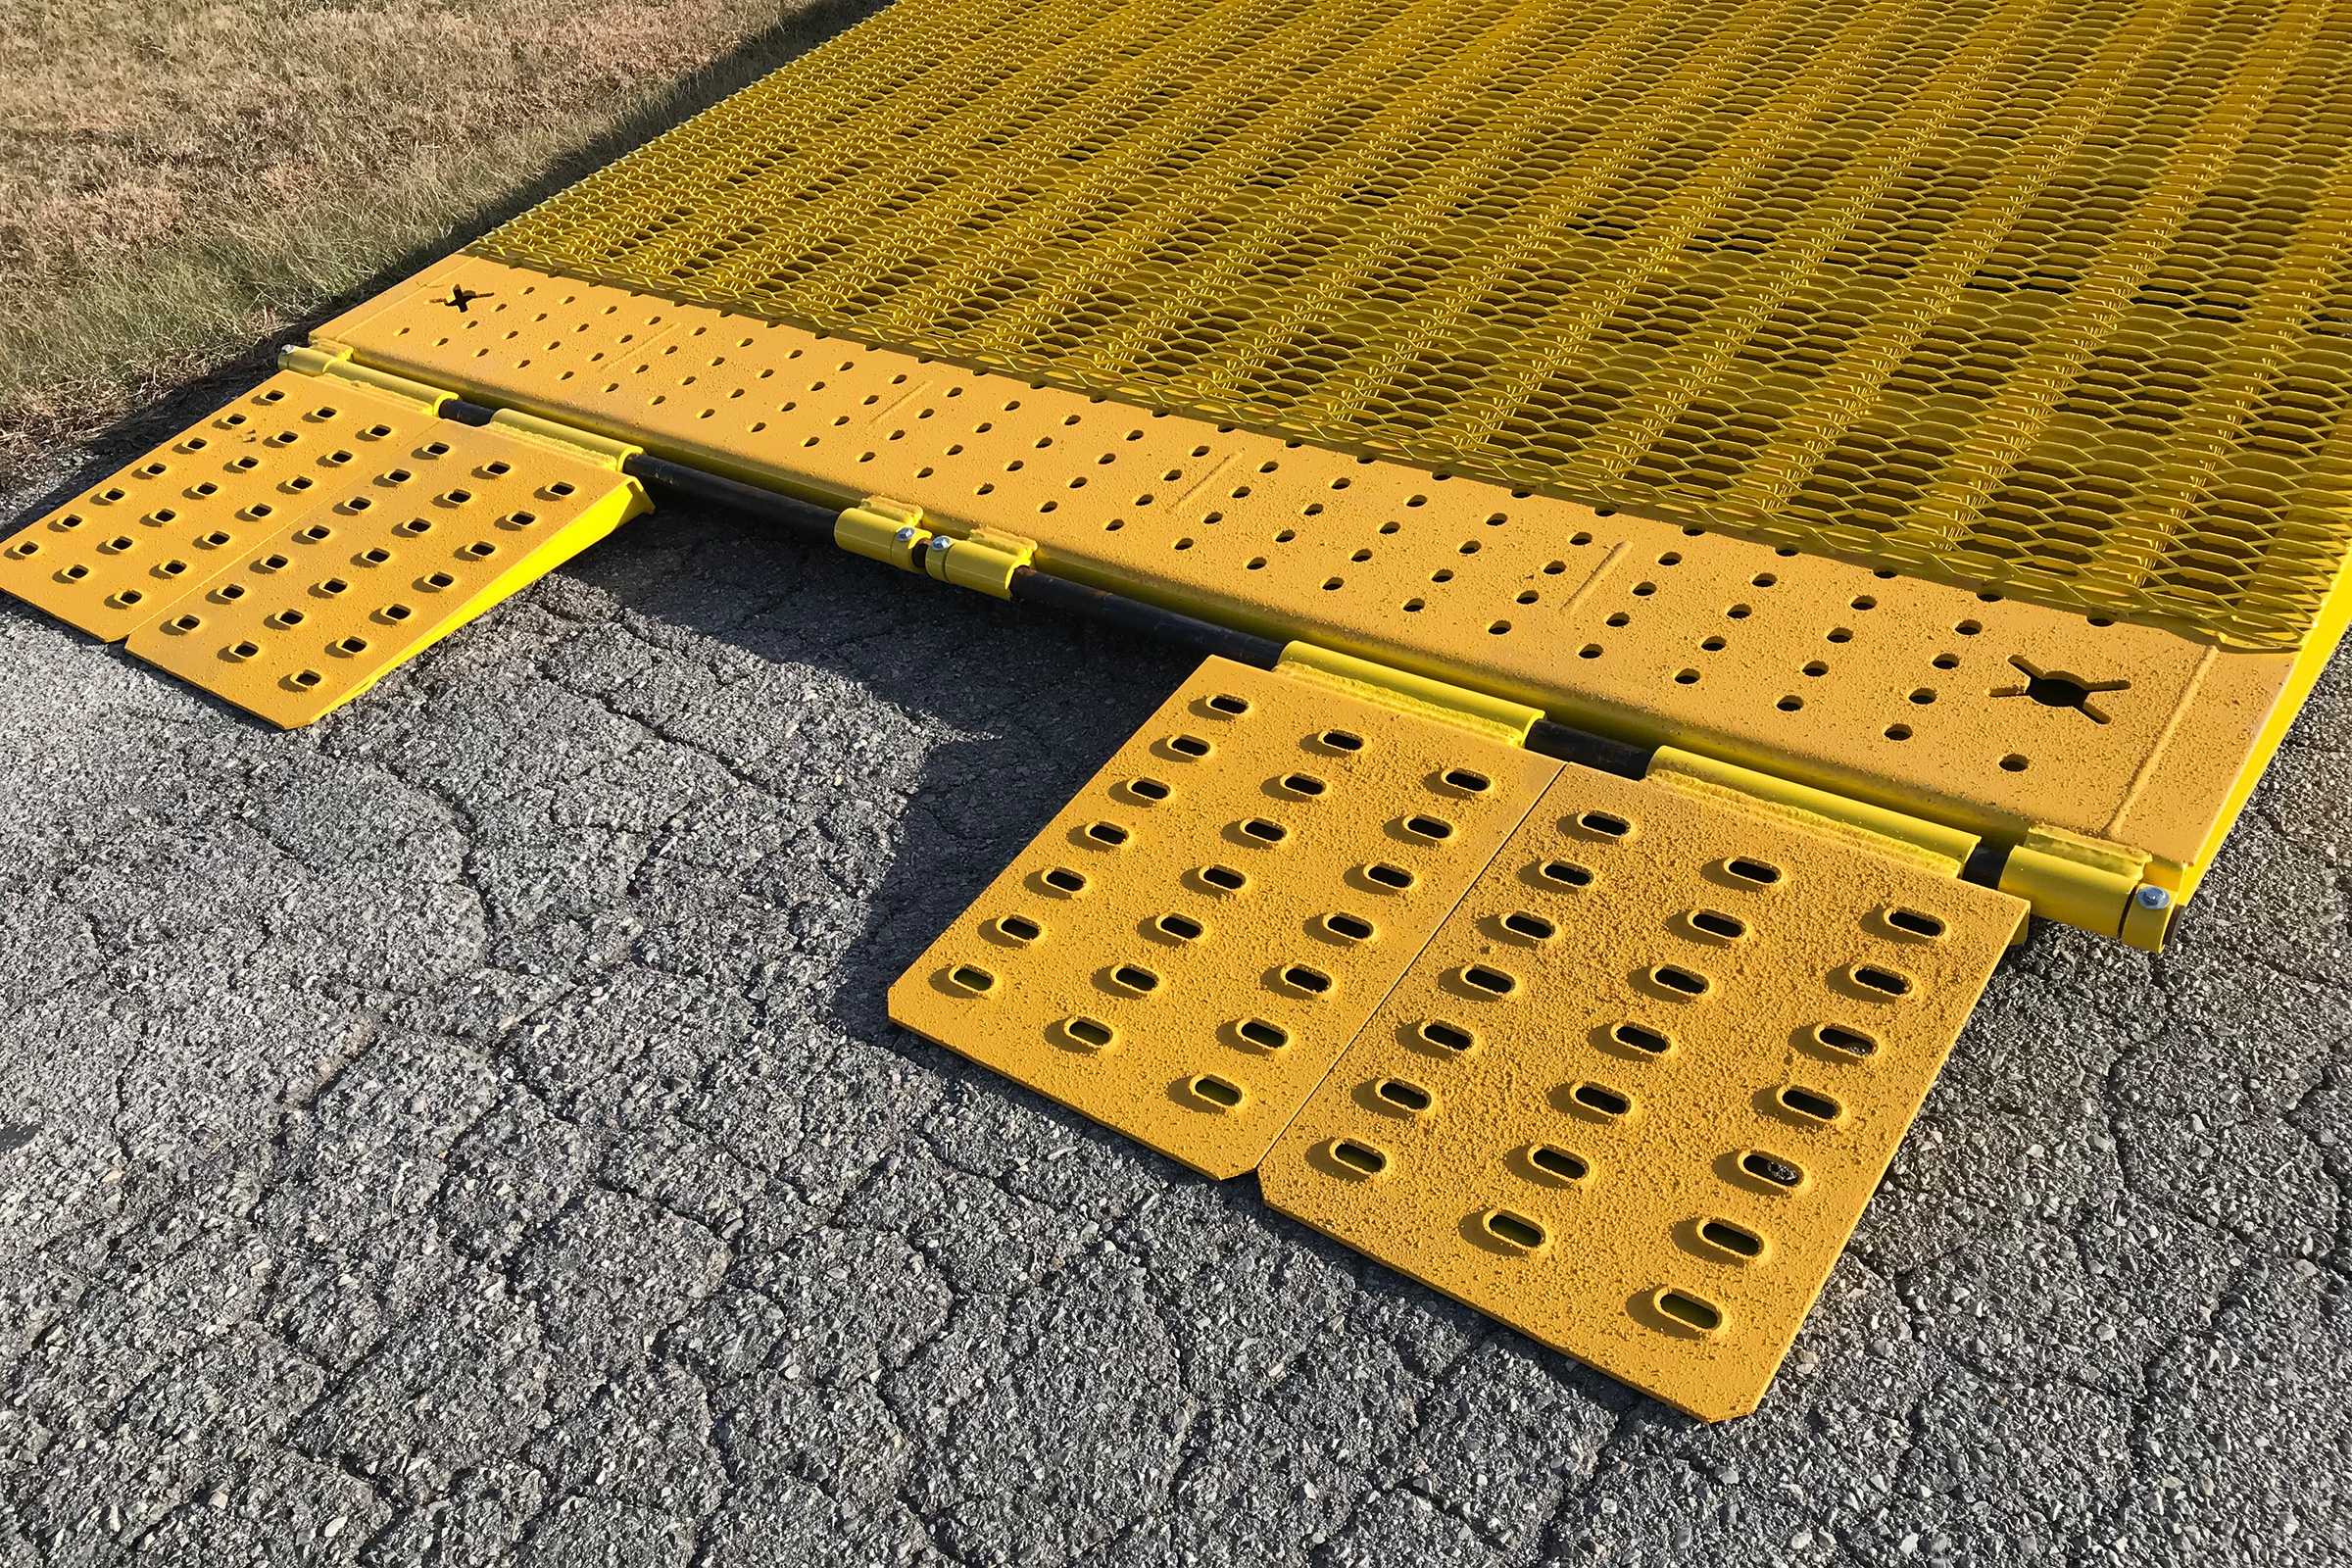 Special Transport Miller Adjustable ramps for loading freight.